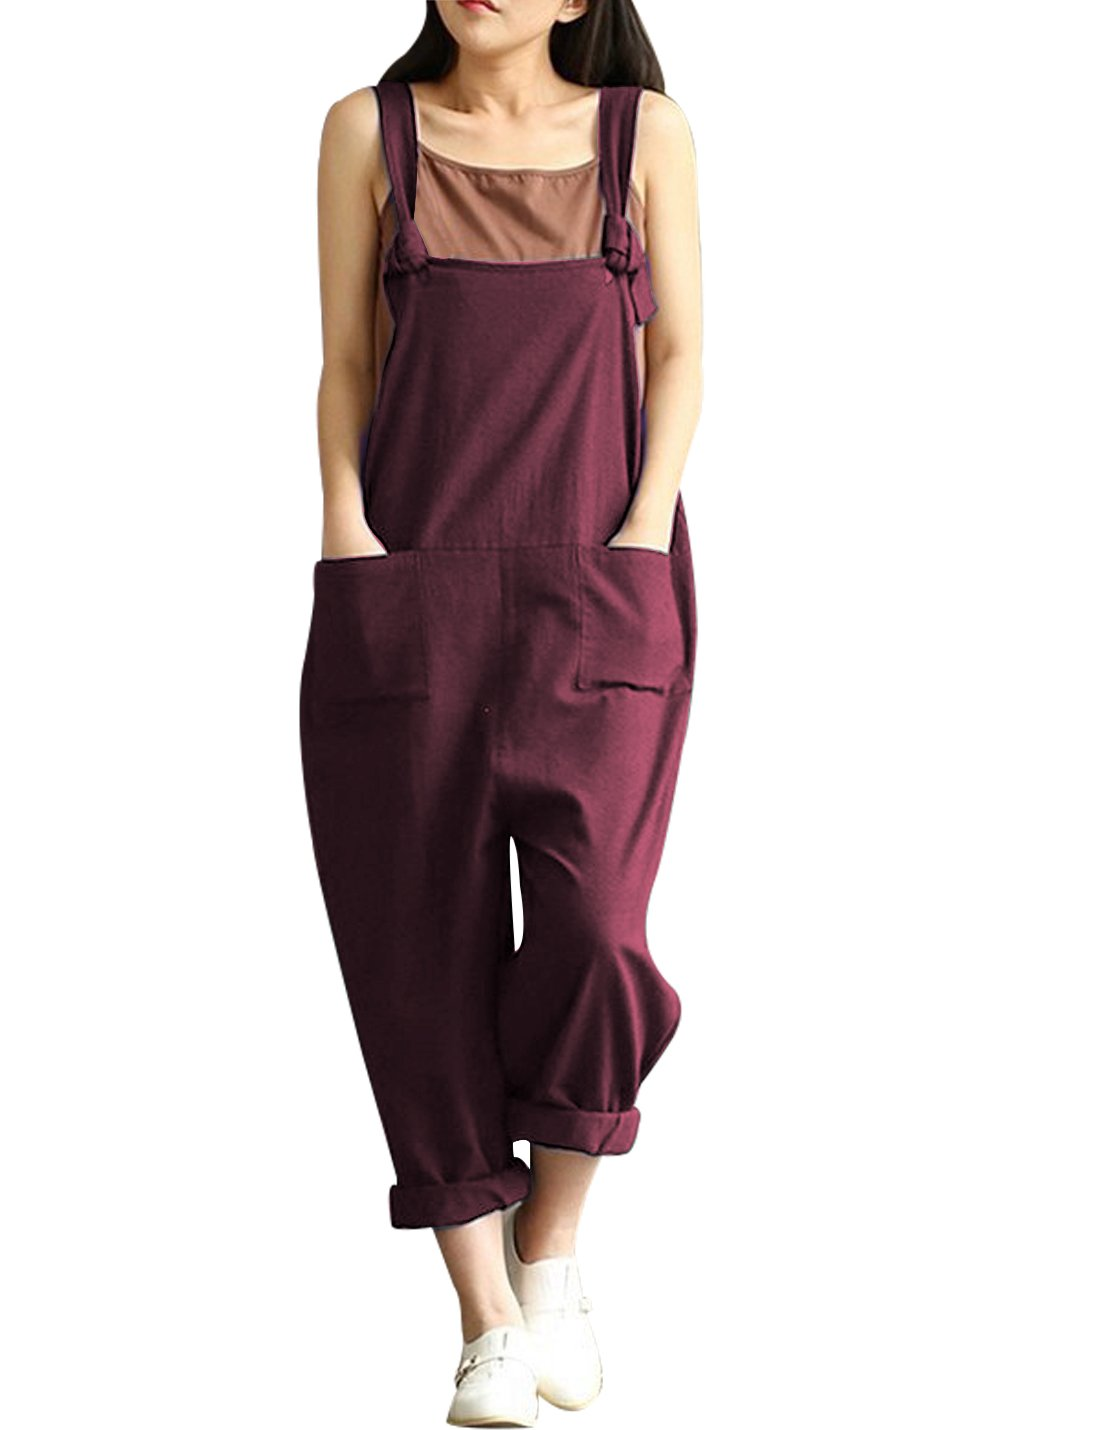 Yeokou Women's Linen Wide Leg Jumpsuit Rompers Overalls Harem Pants Plus Size (XX-Large, Style12Red)